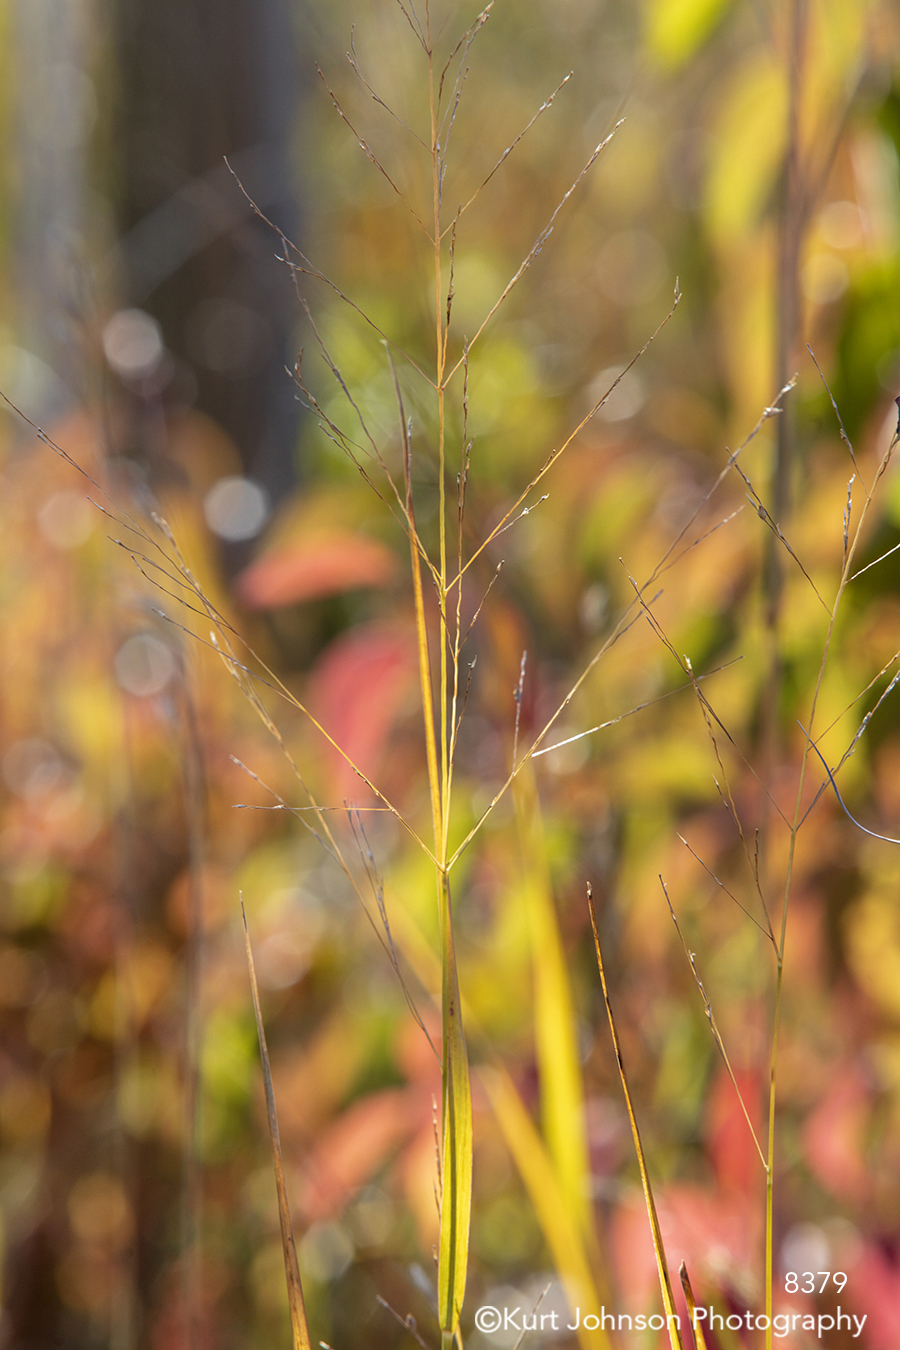 green red yellow grass grasses field wheat lines pattern texture